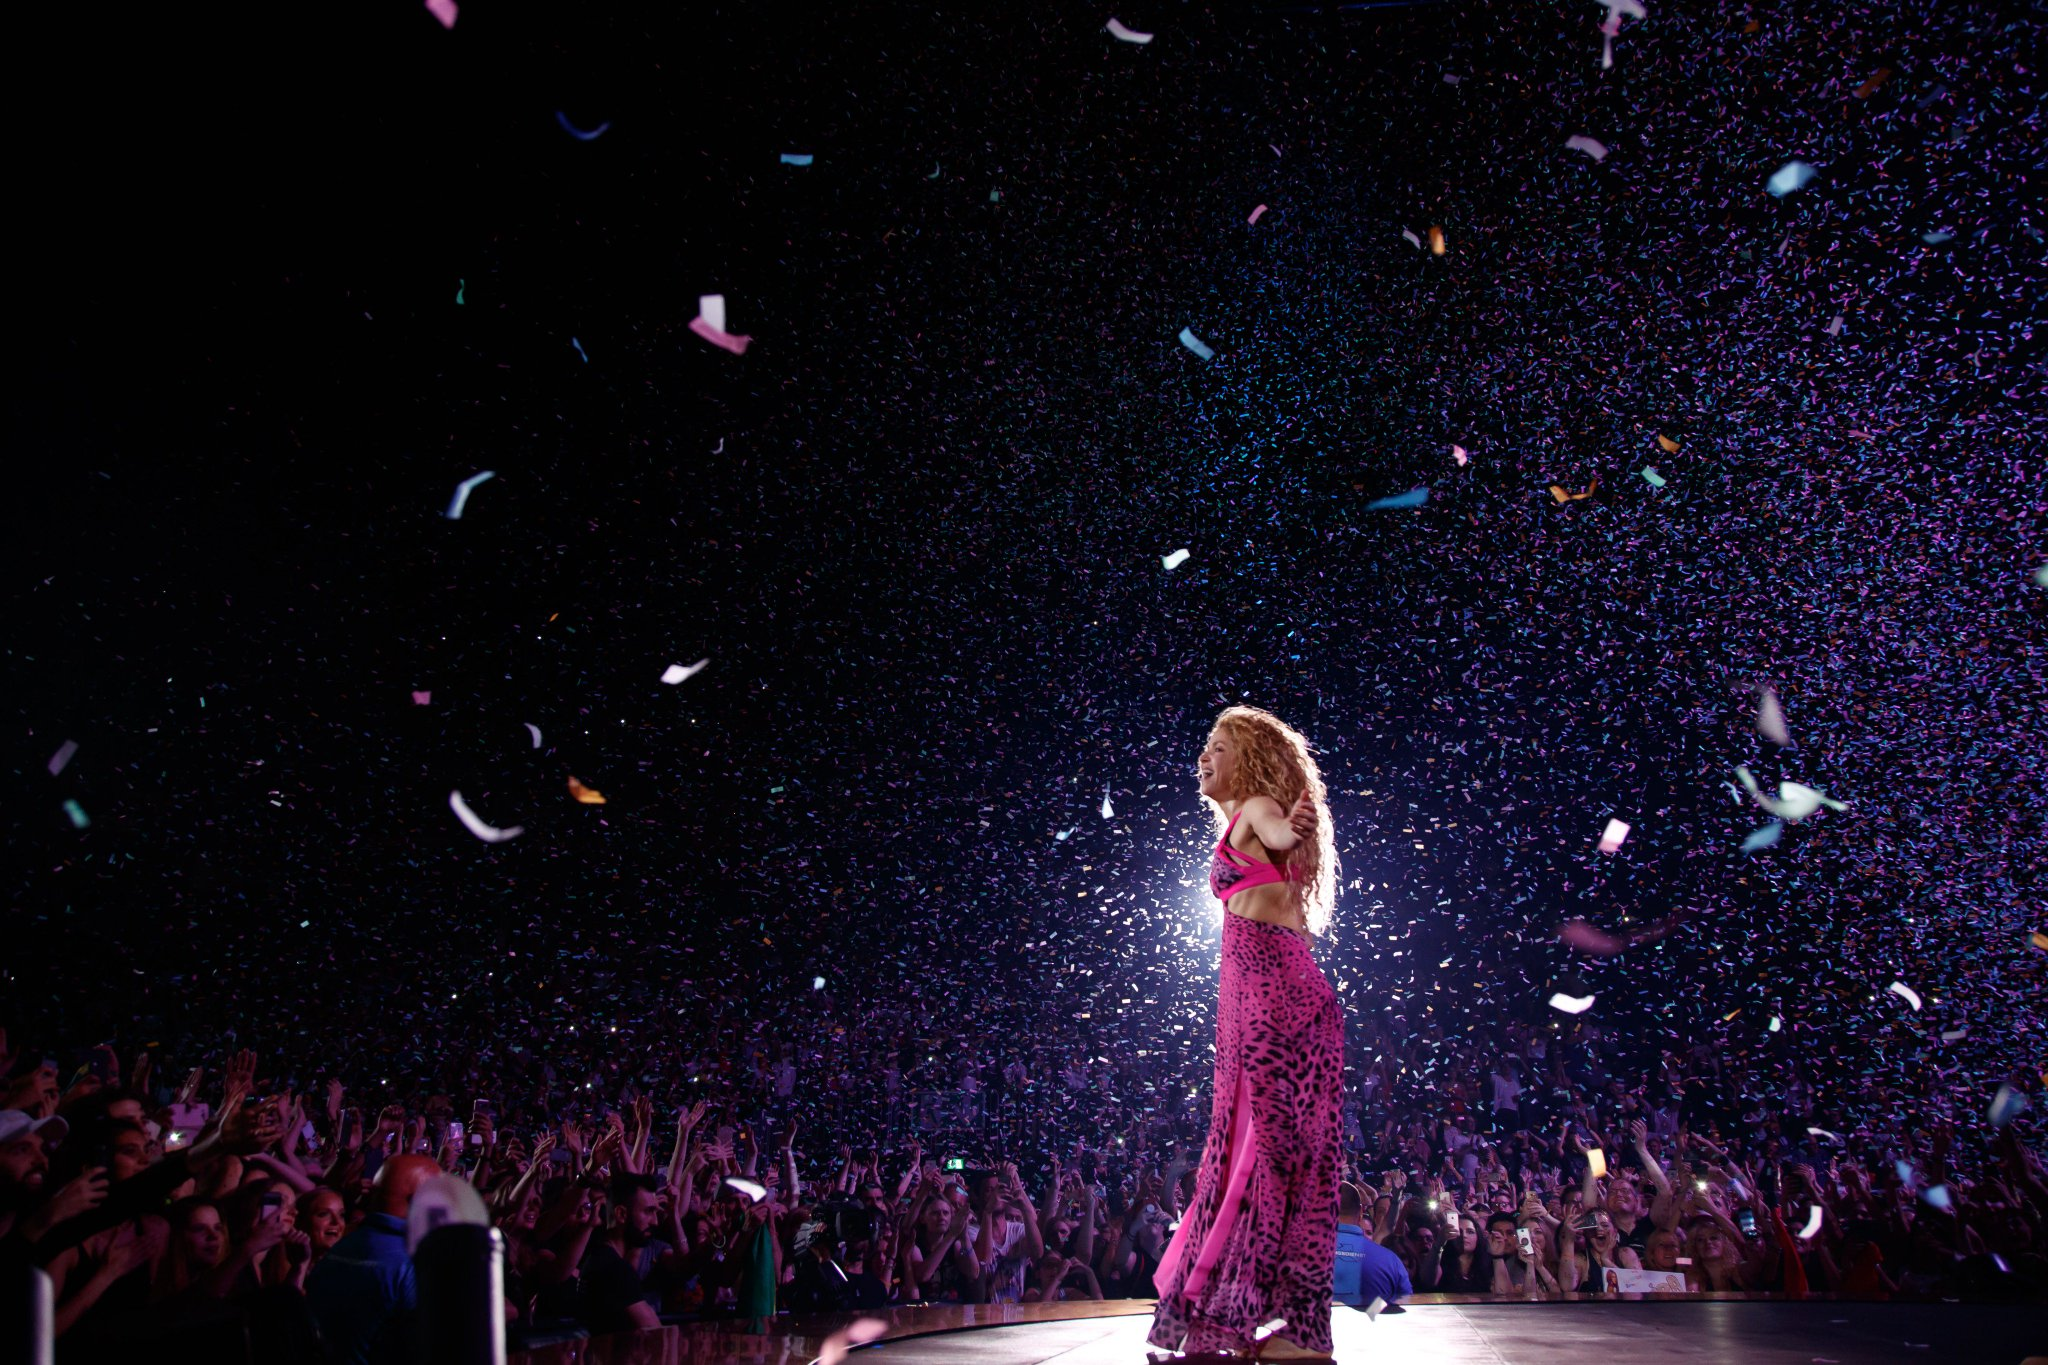 Moments from last night! Momentos de anoche en Colonia! Shak https://t.co/AOjXEpqVtk